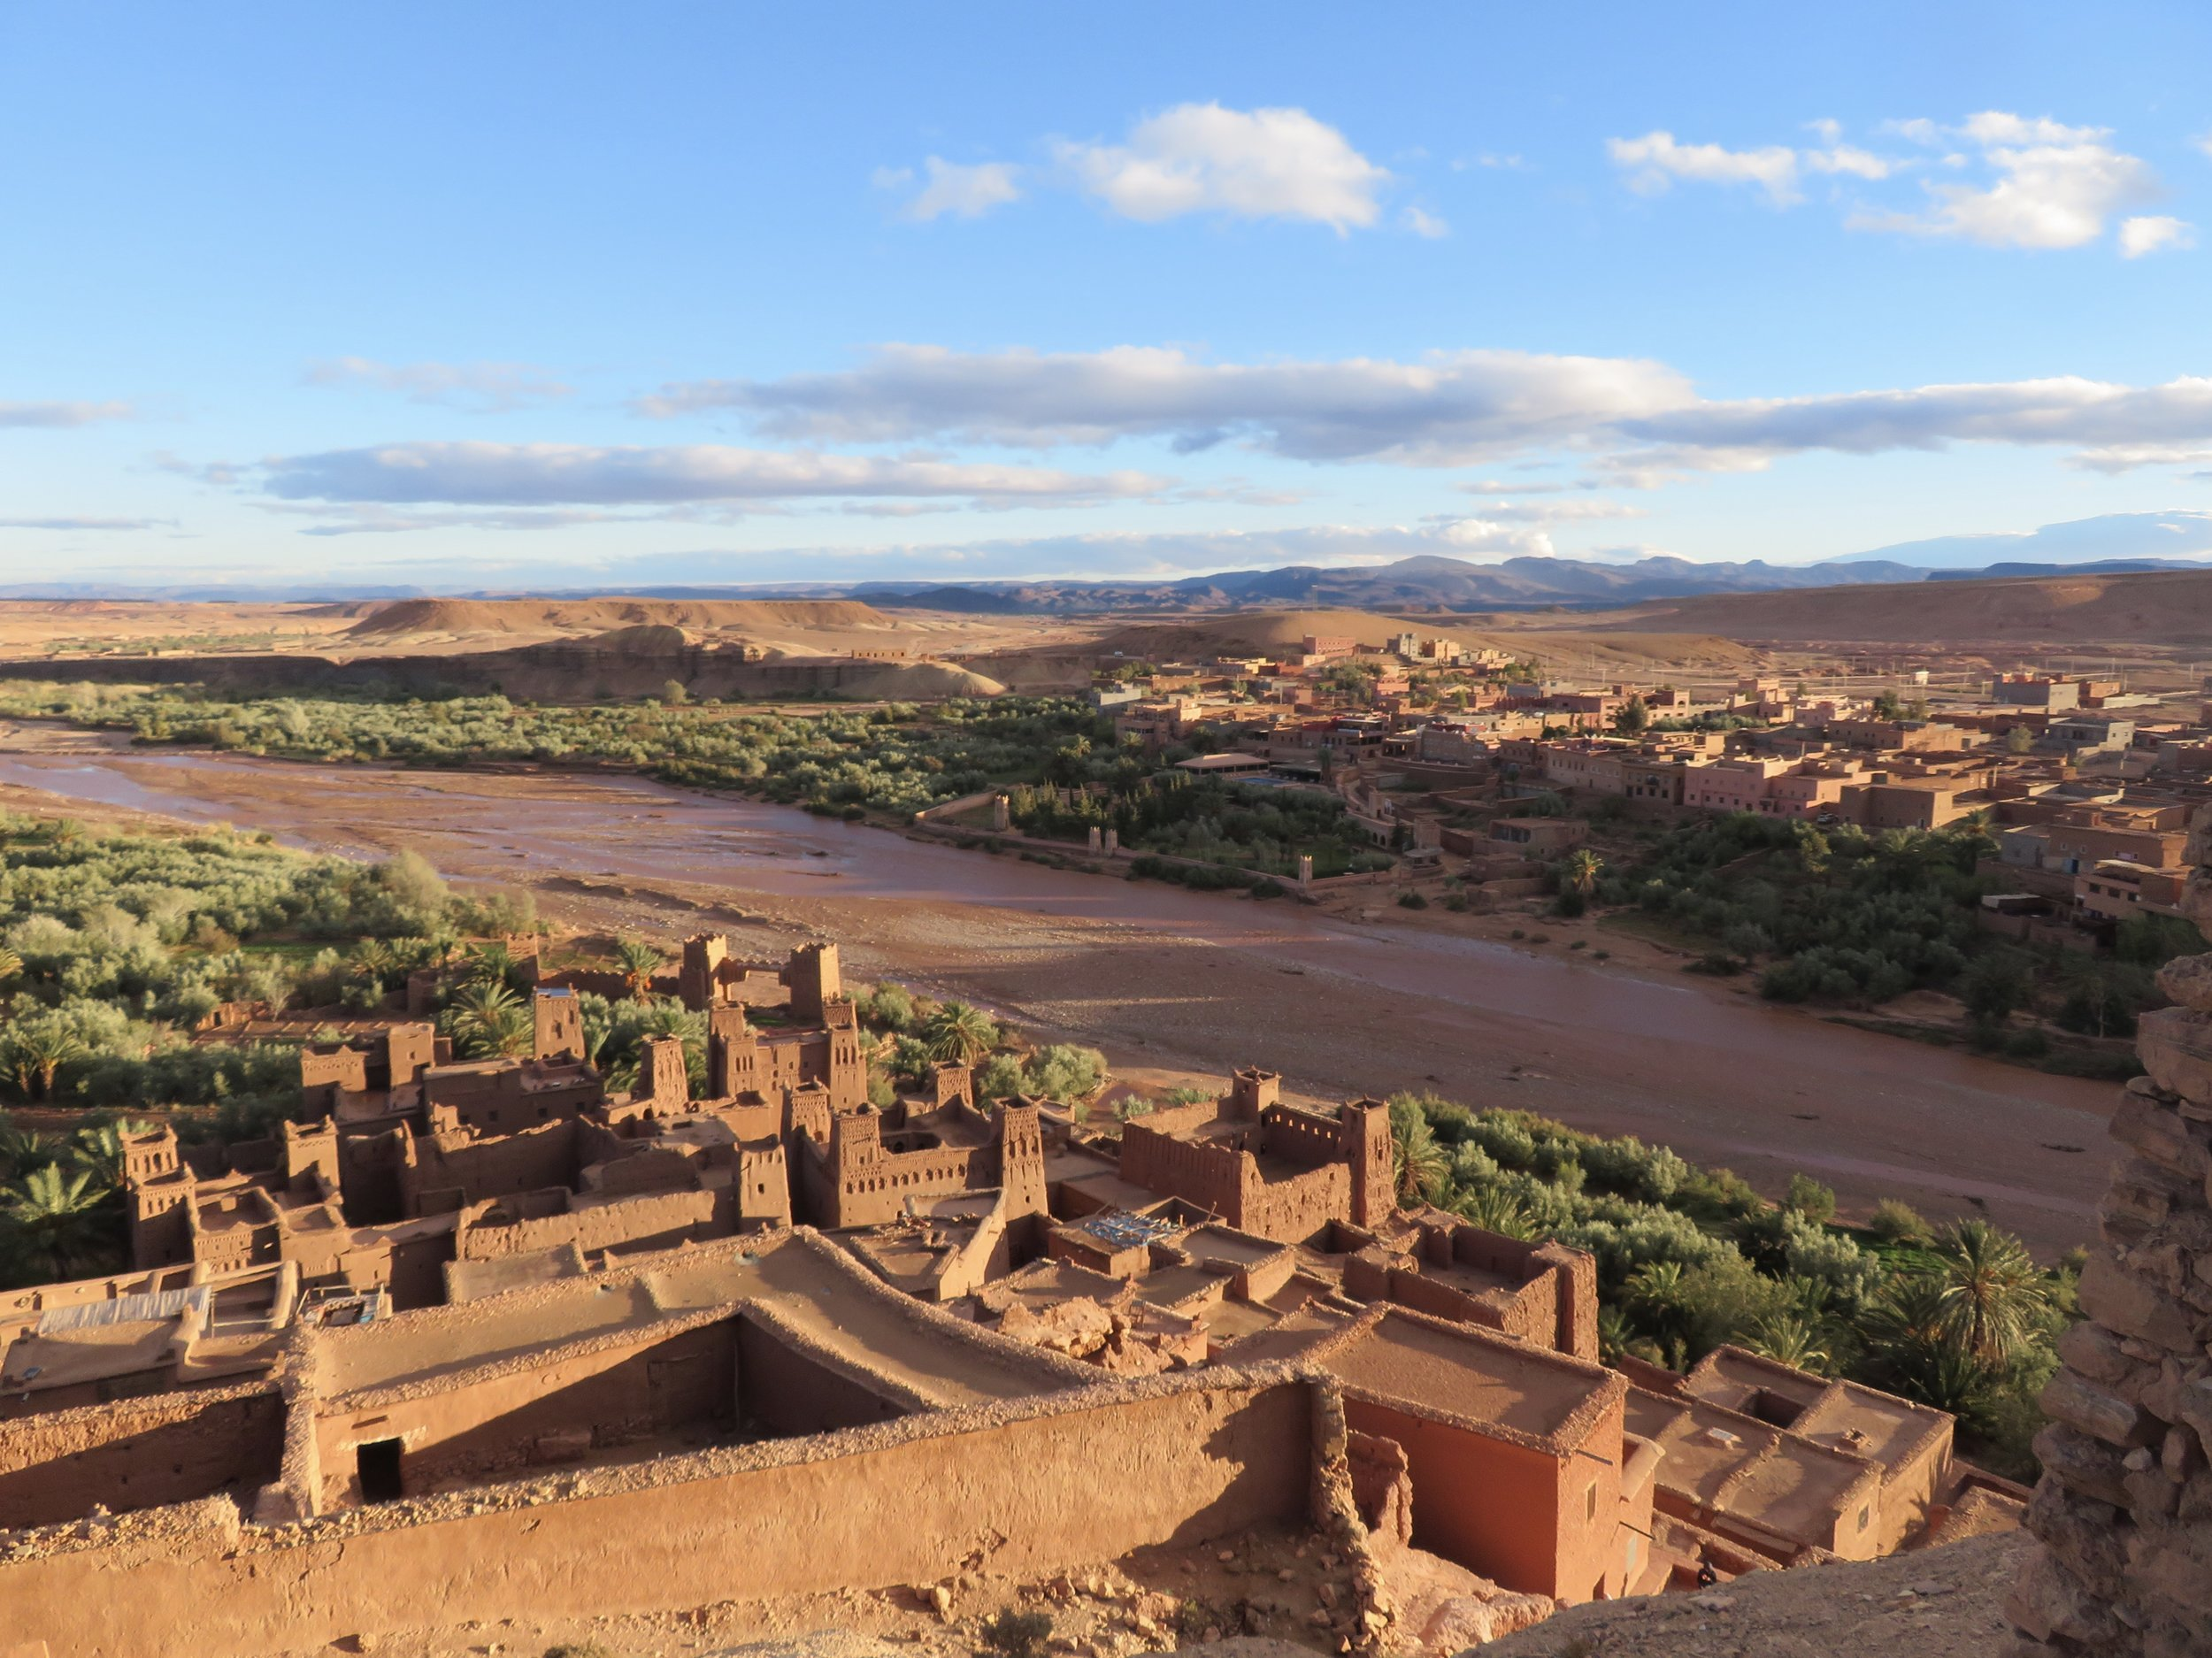 Ait Benhaddou, the perfect movie set!